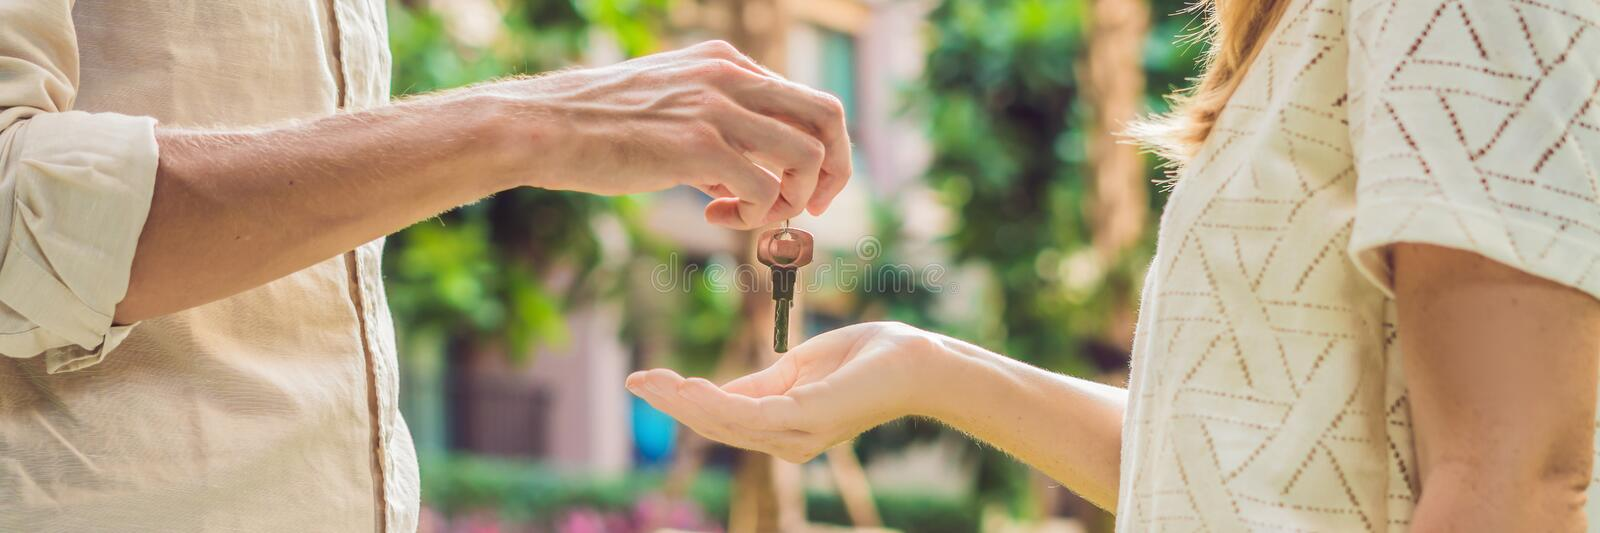 Real estate agent giving keys to apartment owner, buying selling property business. Close up of male hand taking house key from re royalty free stock images